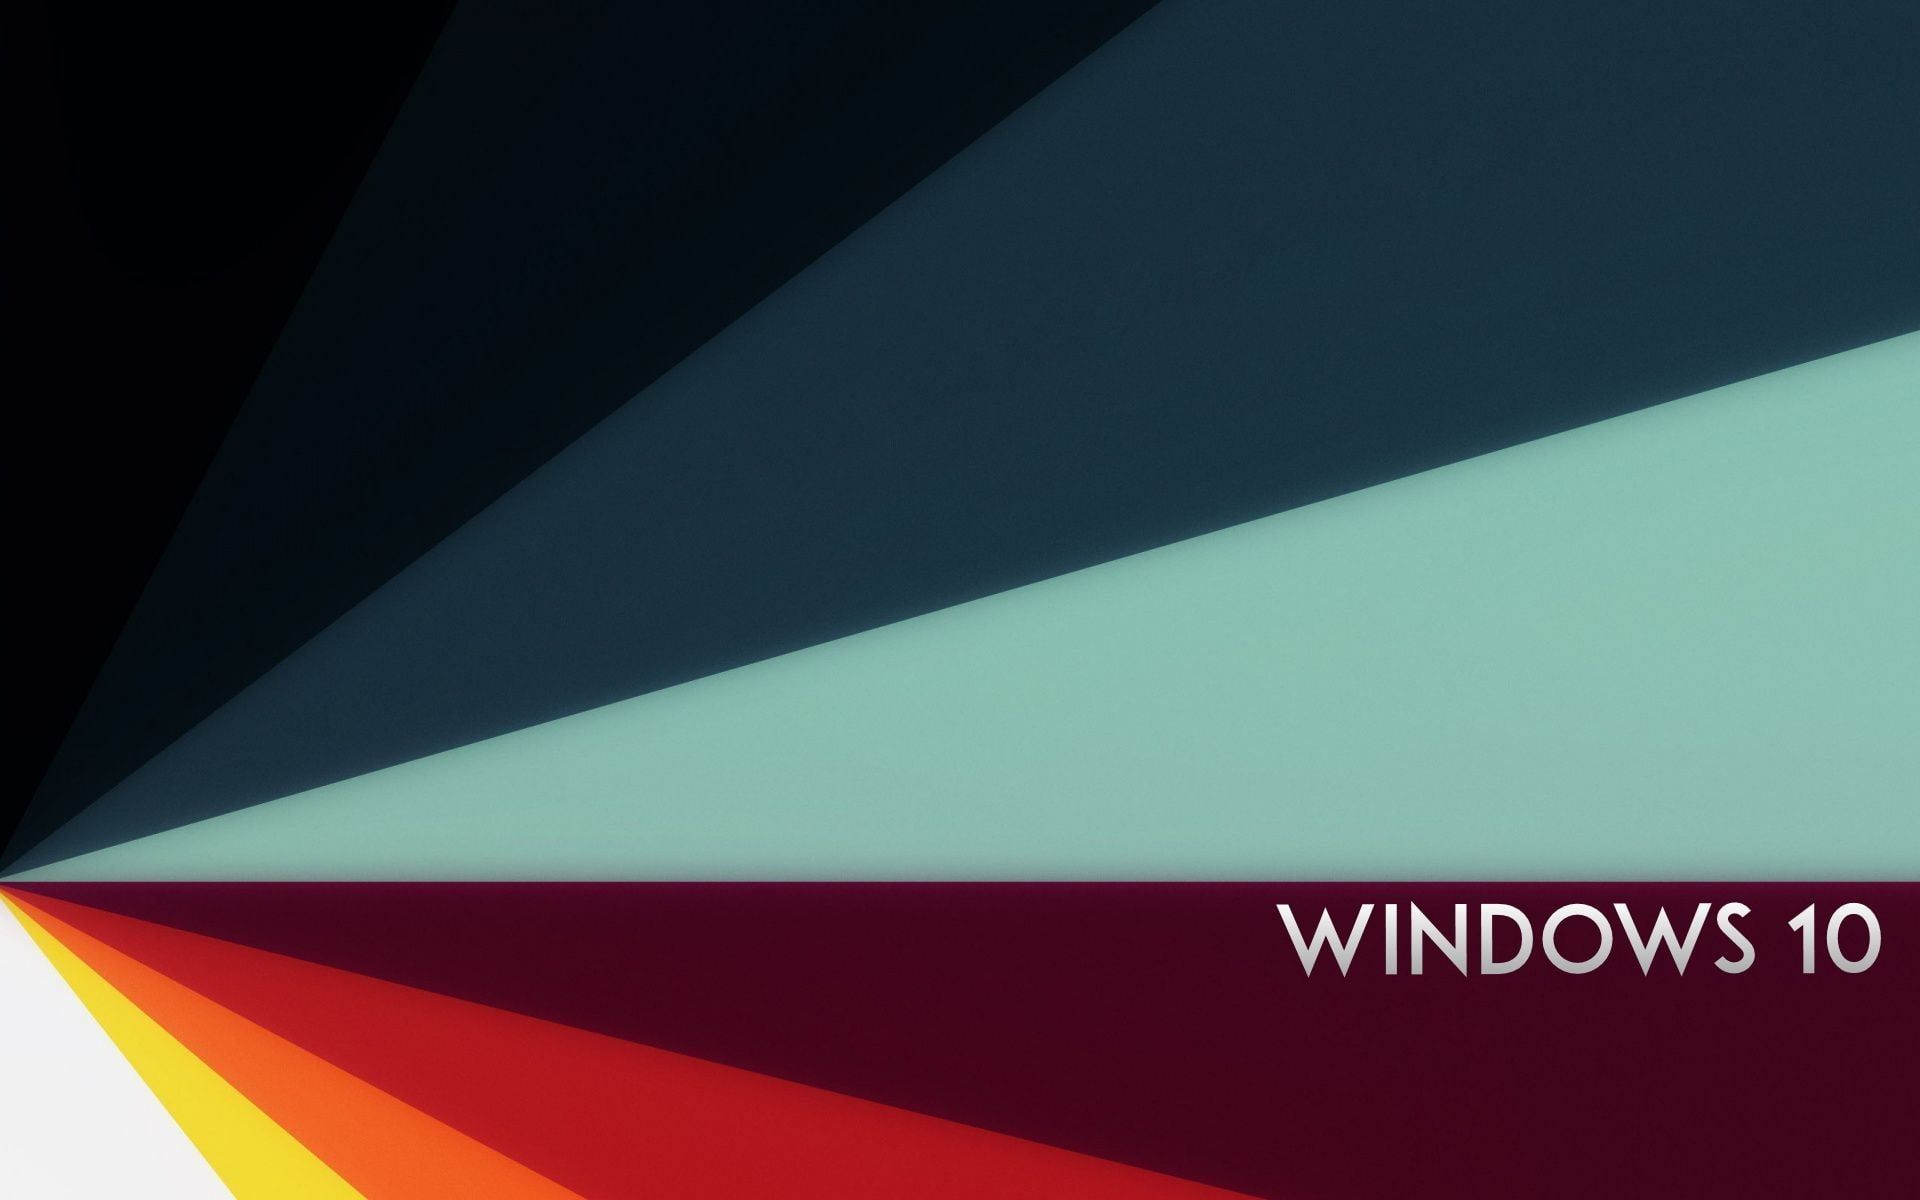 Windows 10 Abstract Background Windows 10 Abstract Background